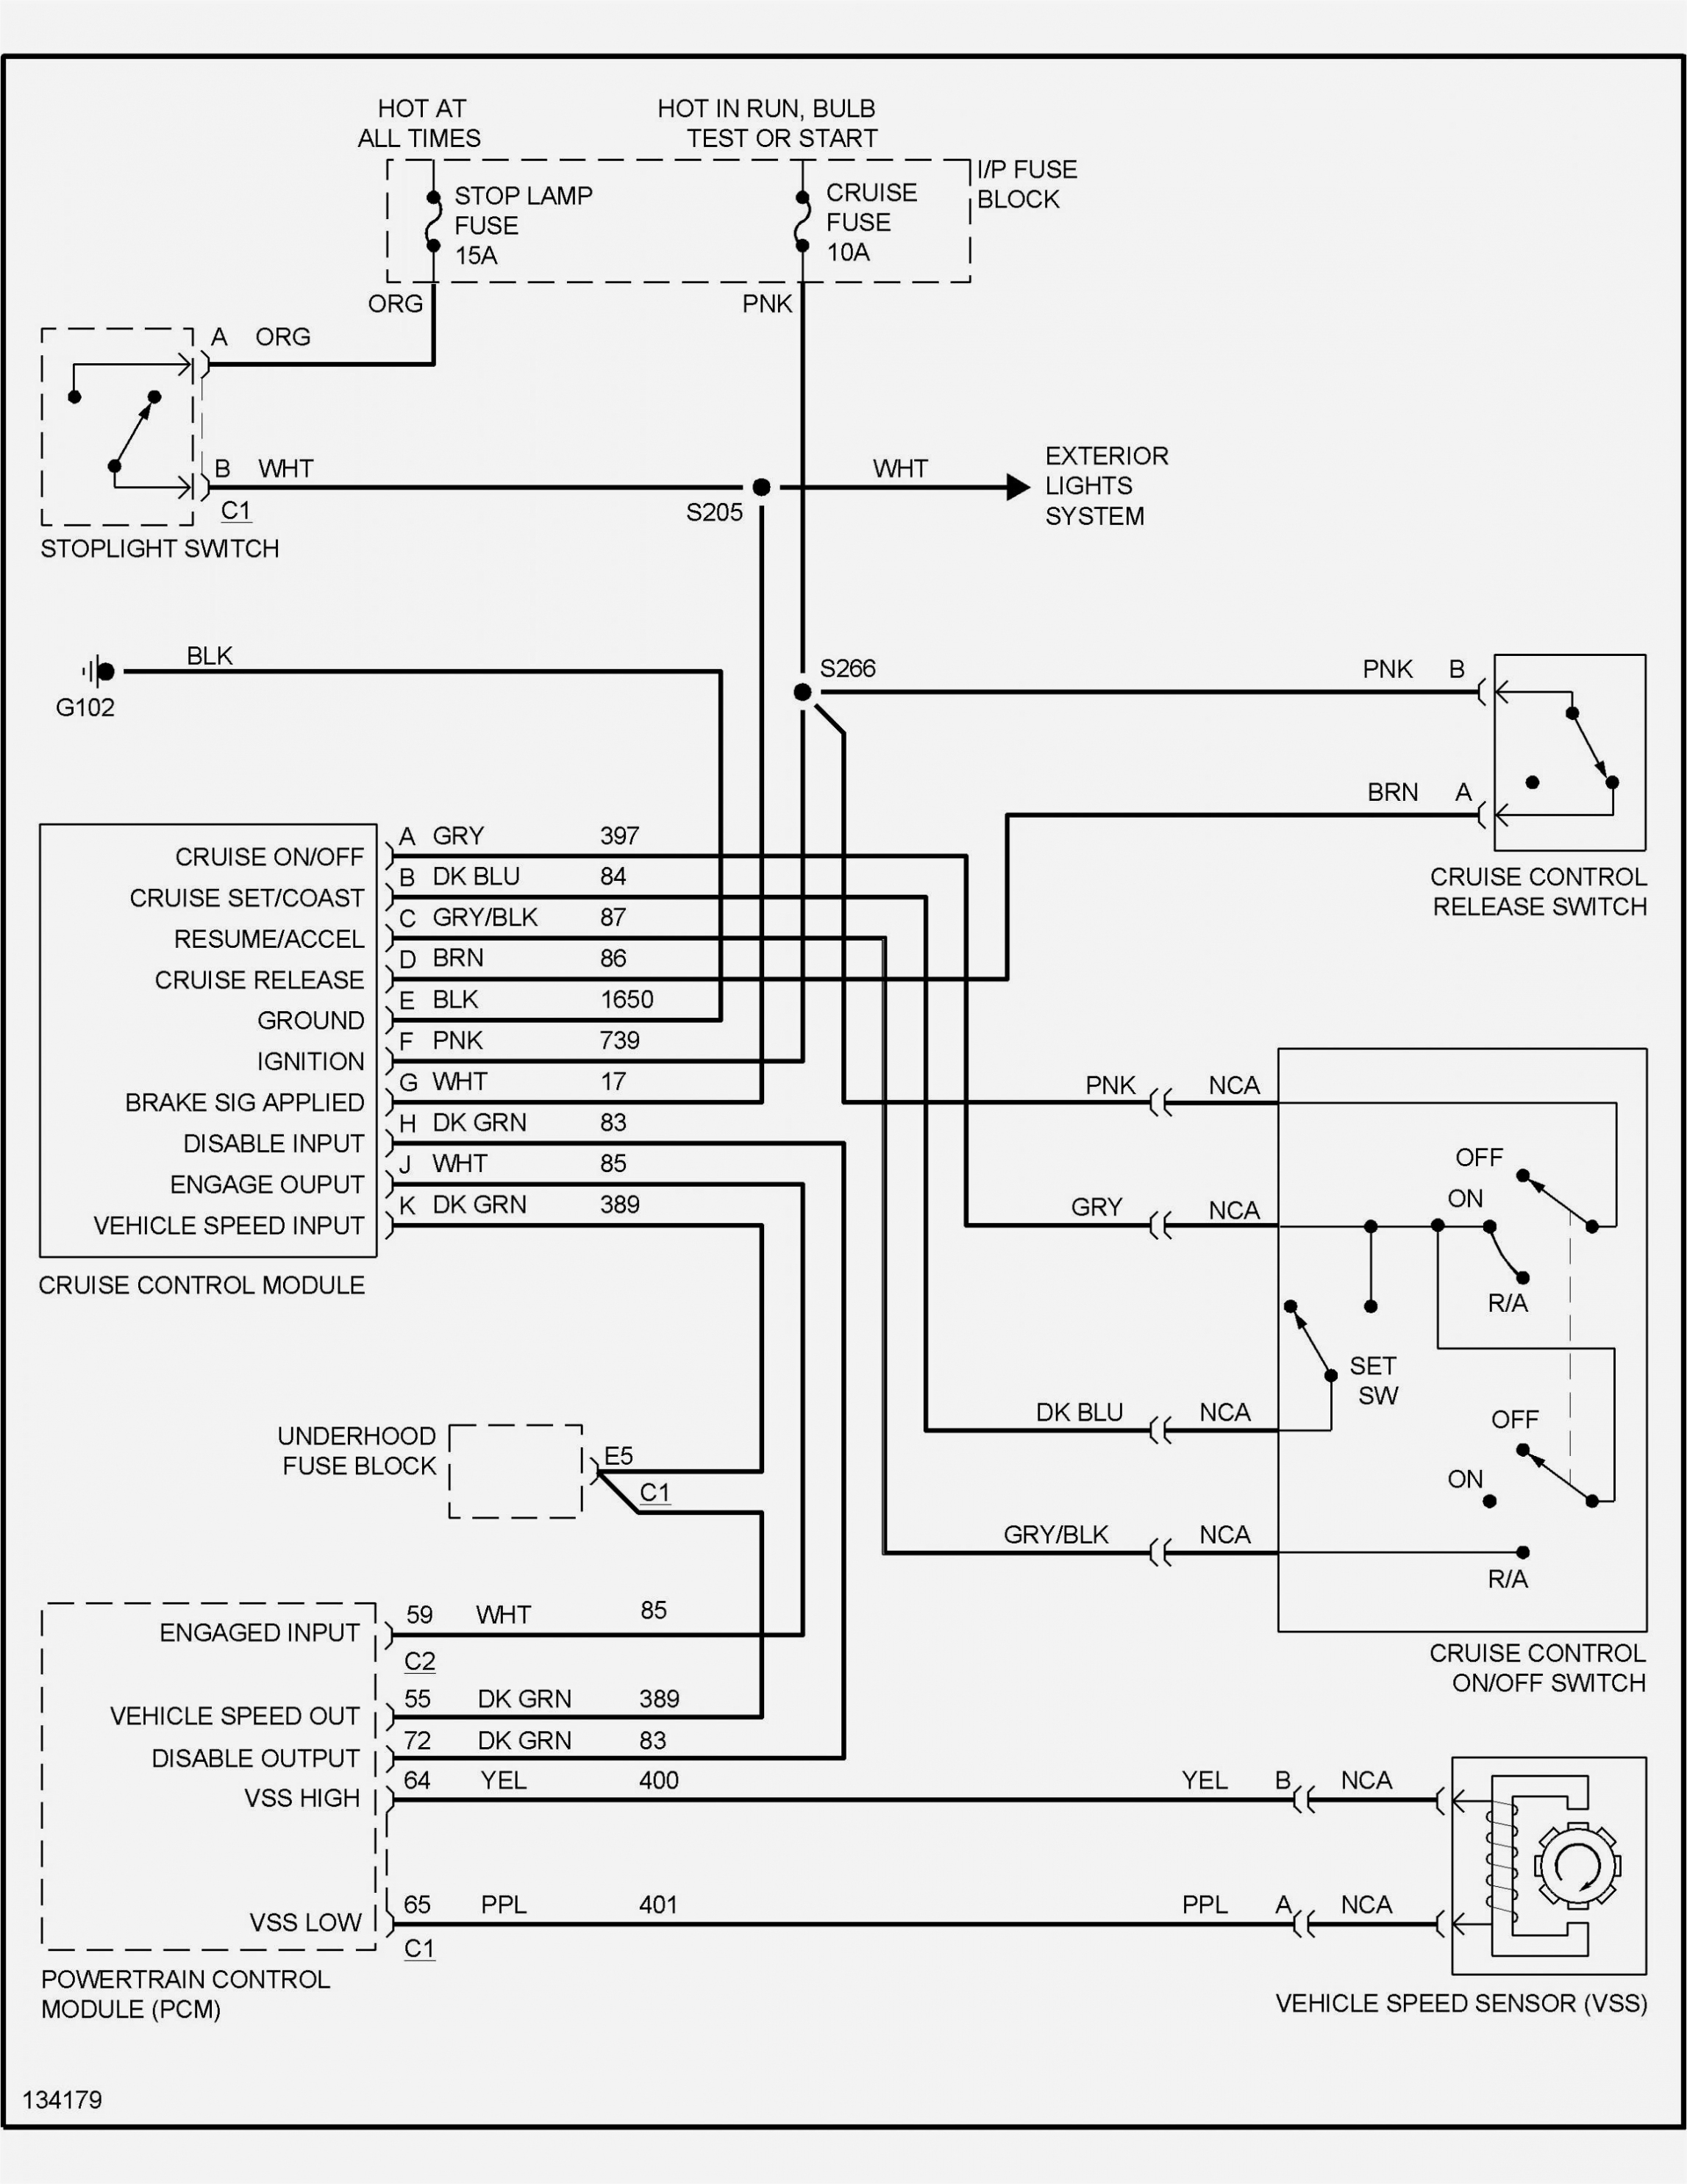 sony cdx gt360mp wiring diagram - k1500 wiring harness for wiring diagram  schematics  wiring diagram schematics